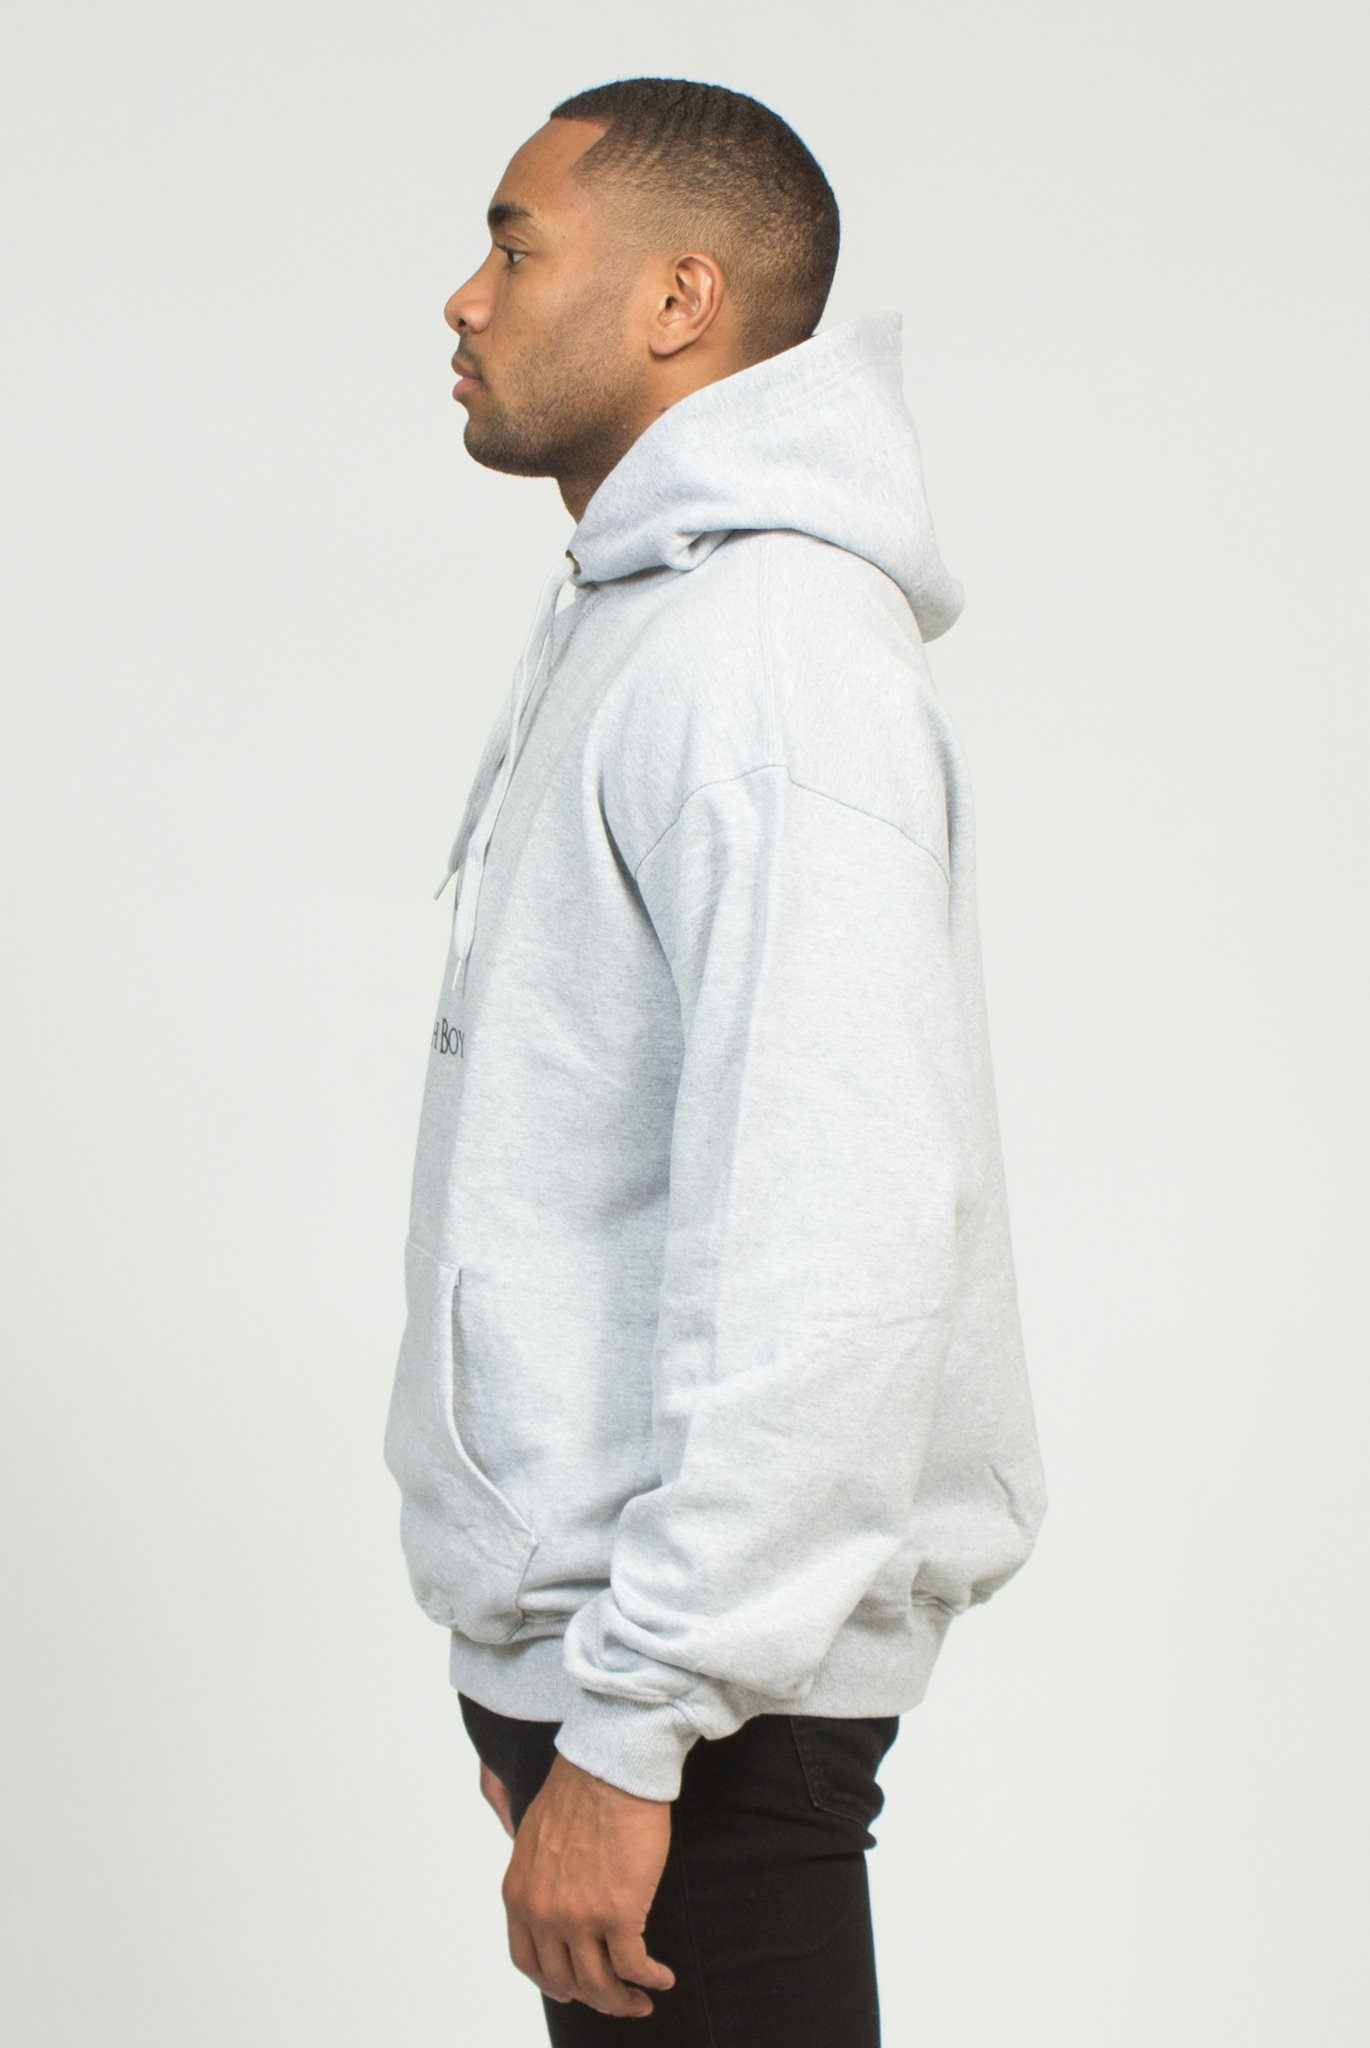 CHAMPION PLRB LOGO OVERSIZED HOODIE IN STEEL | Poor Little Rich Boy Clothing